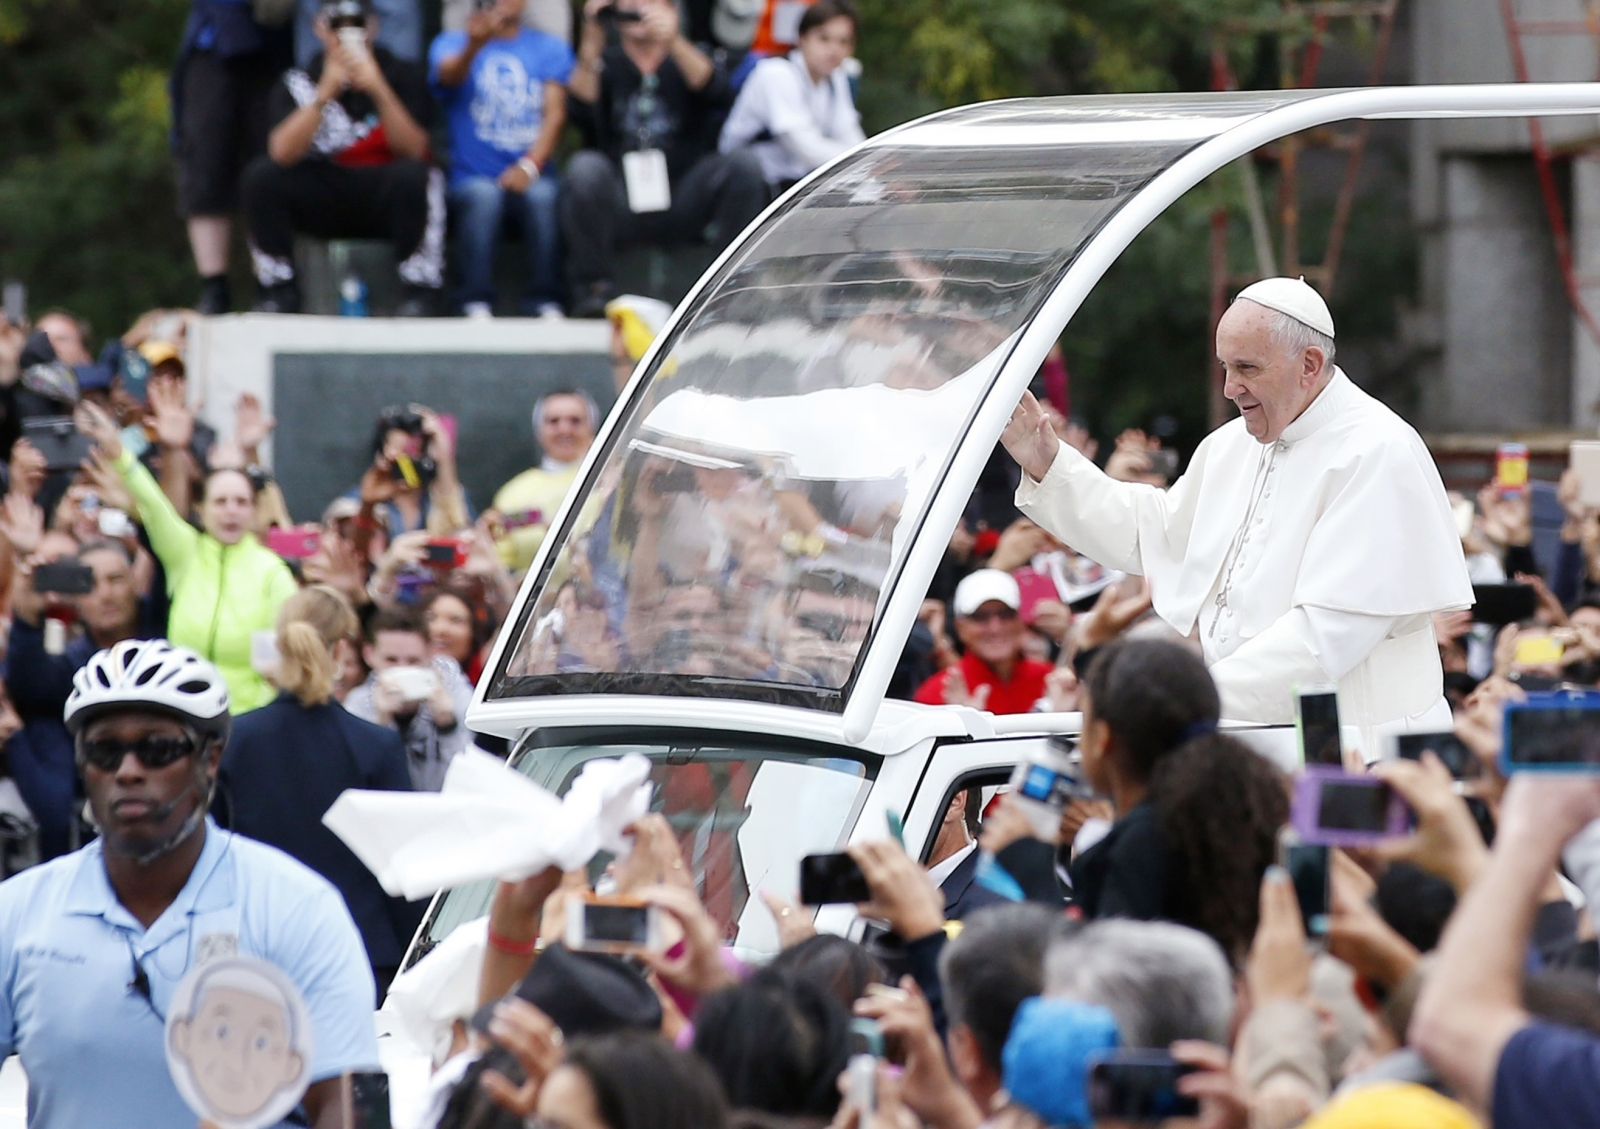 Teen admits plotting to kill Pope during Philadelphia trip